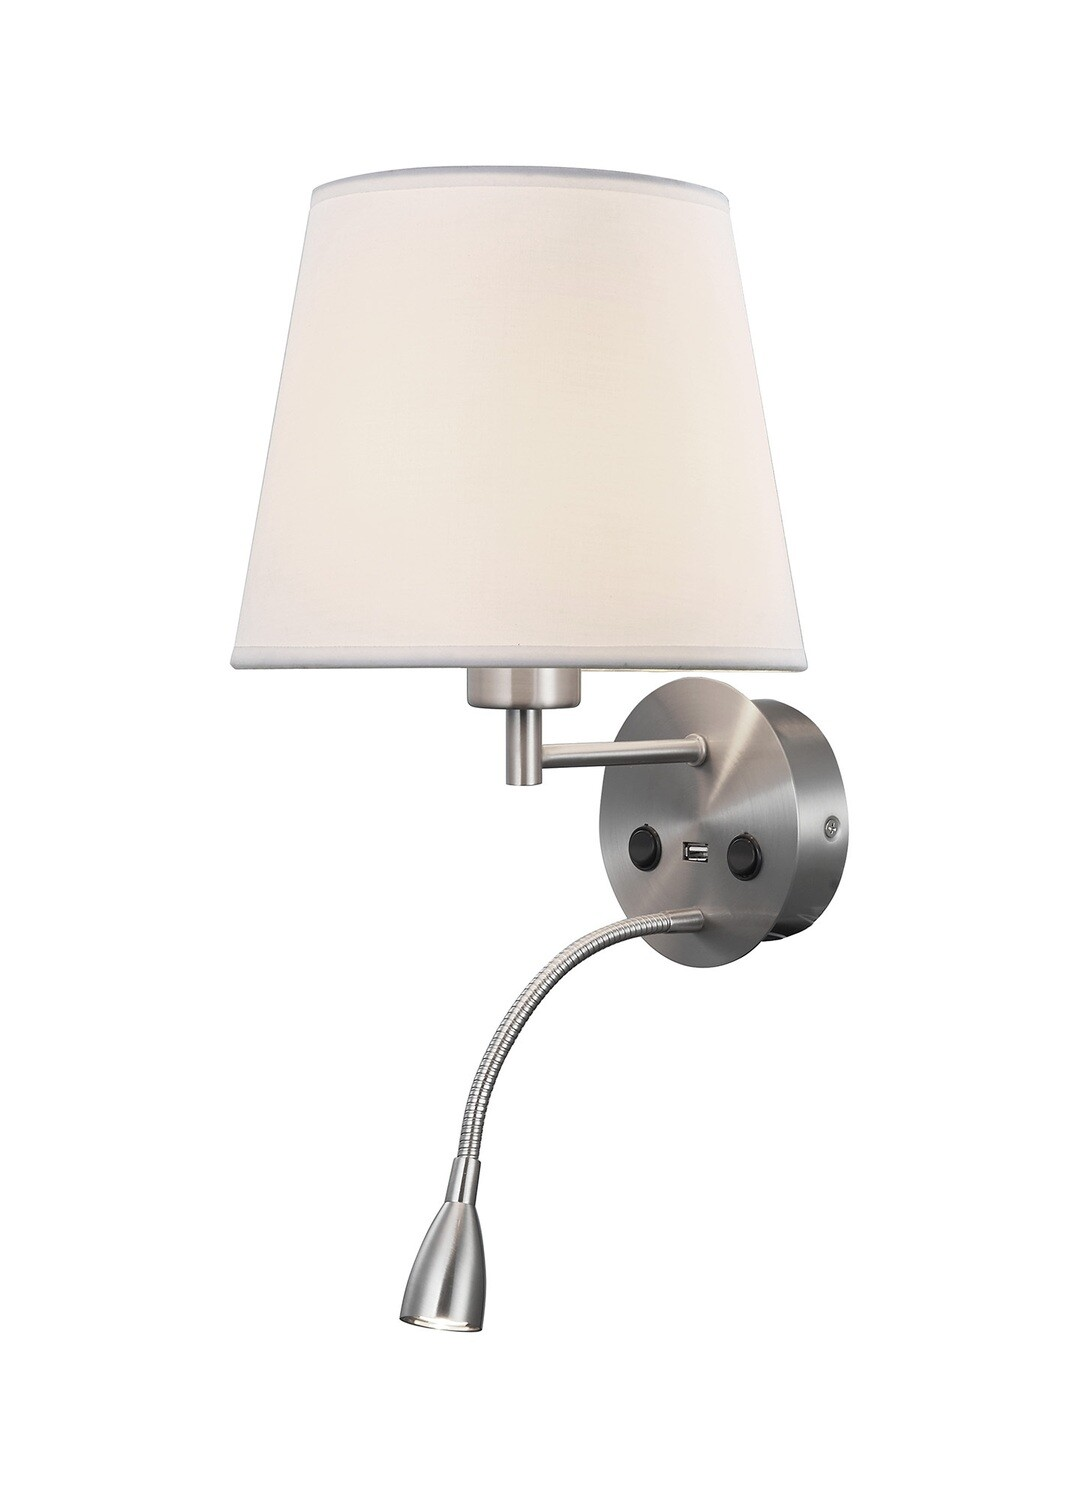 Caicos Wall + Reading Light with USB Charger, 1 x E27 + 3W LED, 3000K, 210lm LED, Individually Switched, Satin Nickel